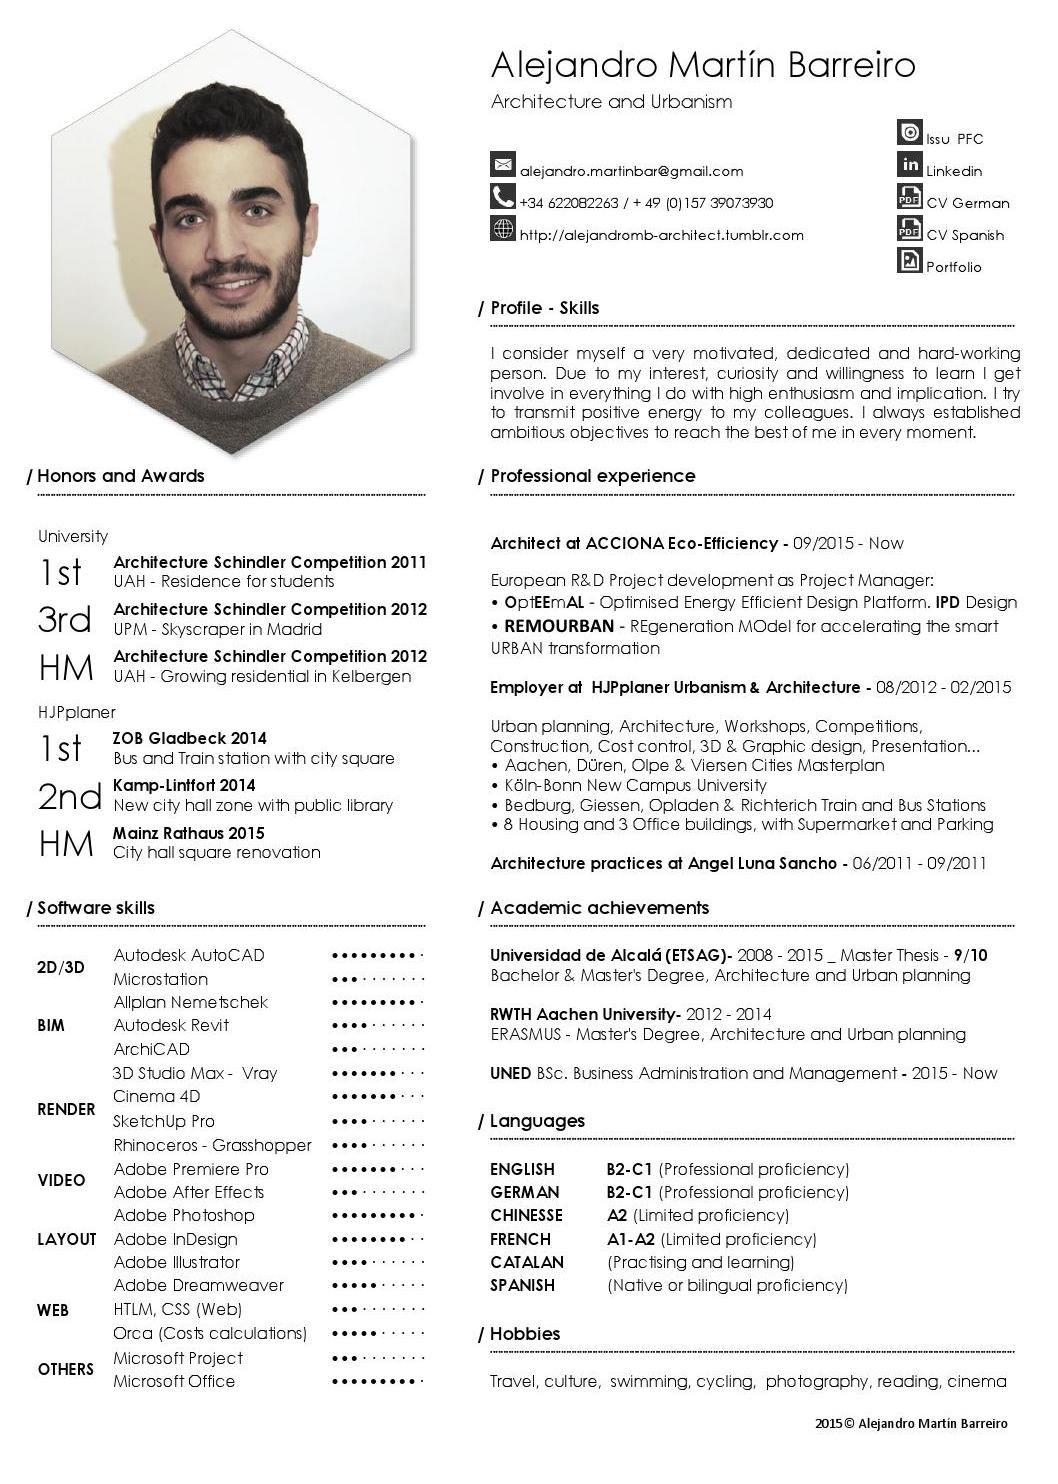 Alejandro Martín Barreiro | Resume cv, Design resume and Resume ideas